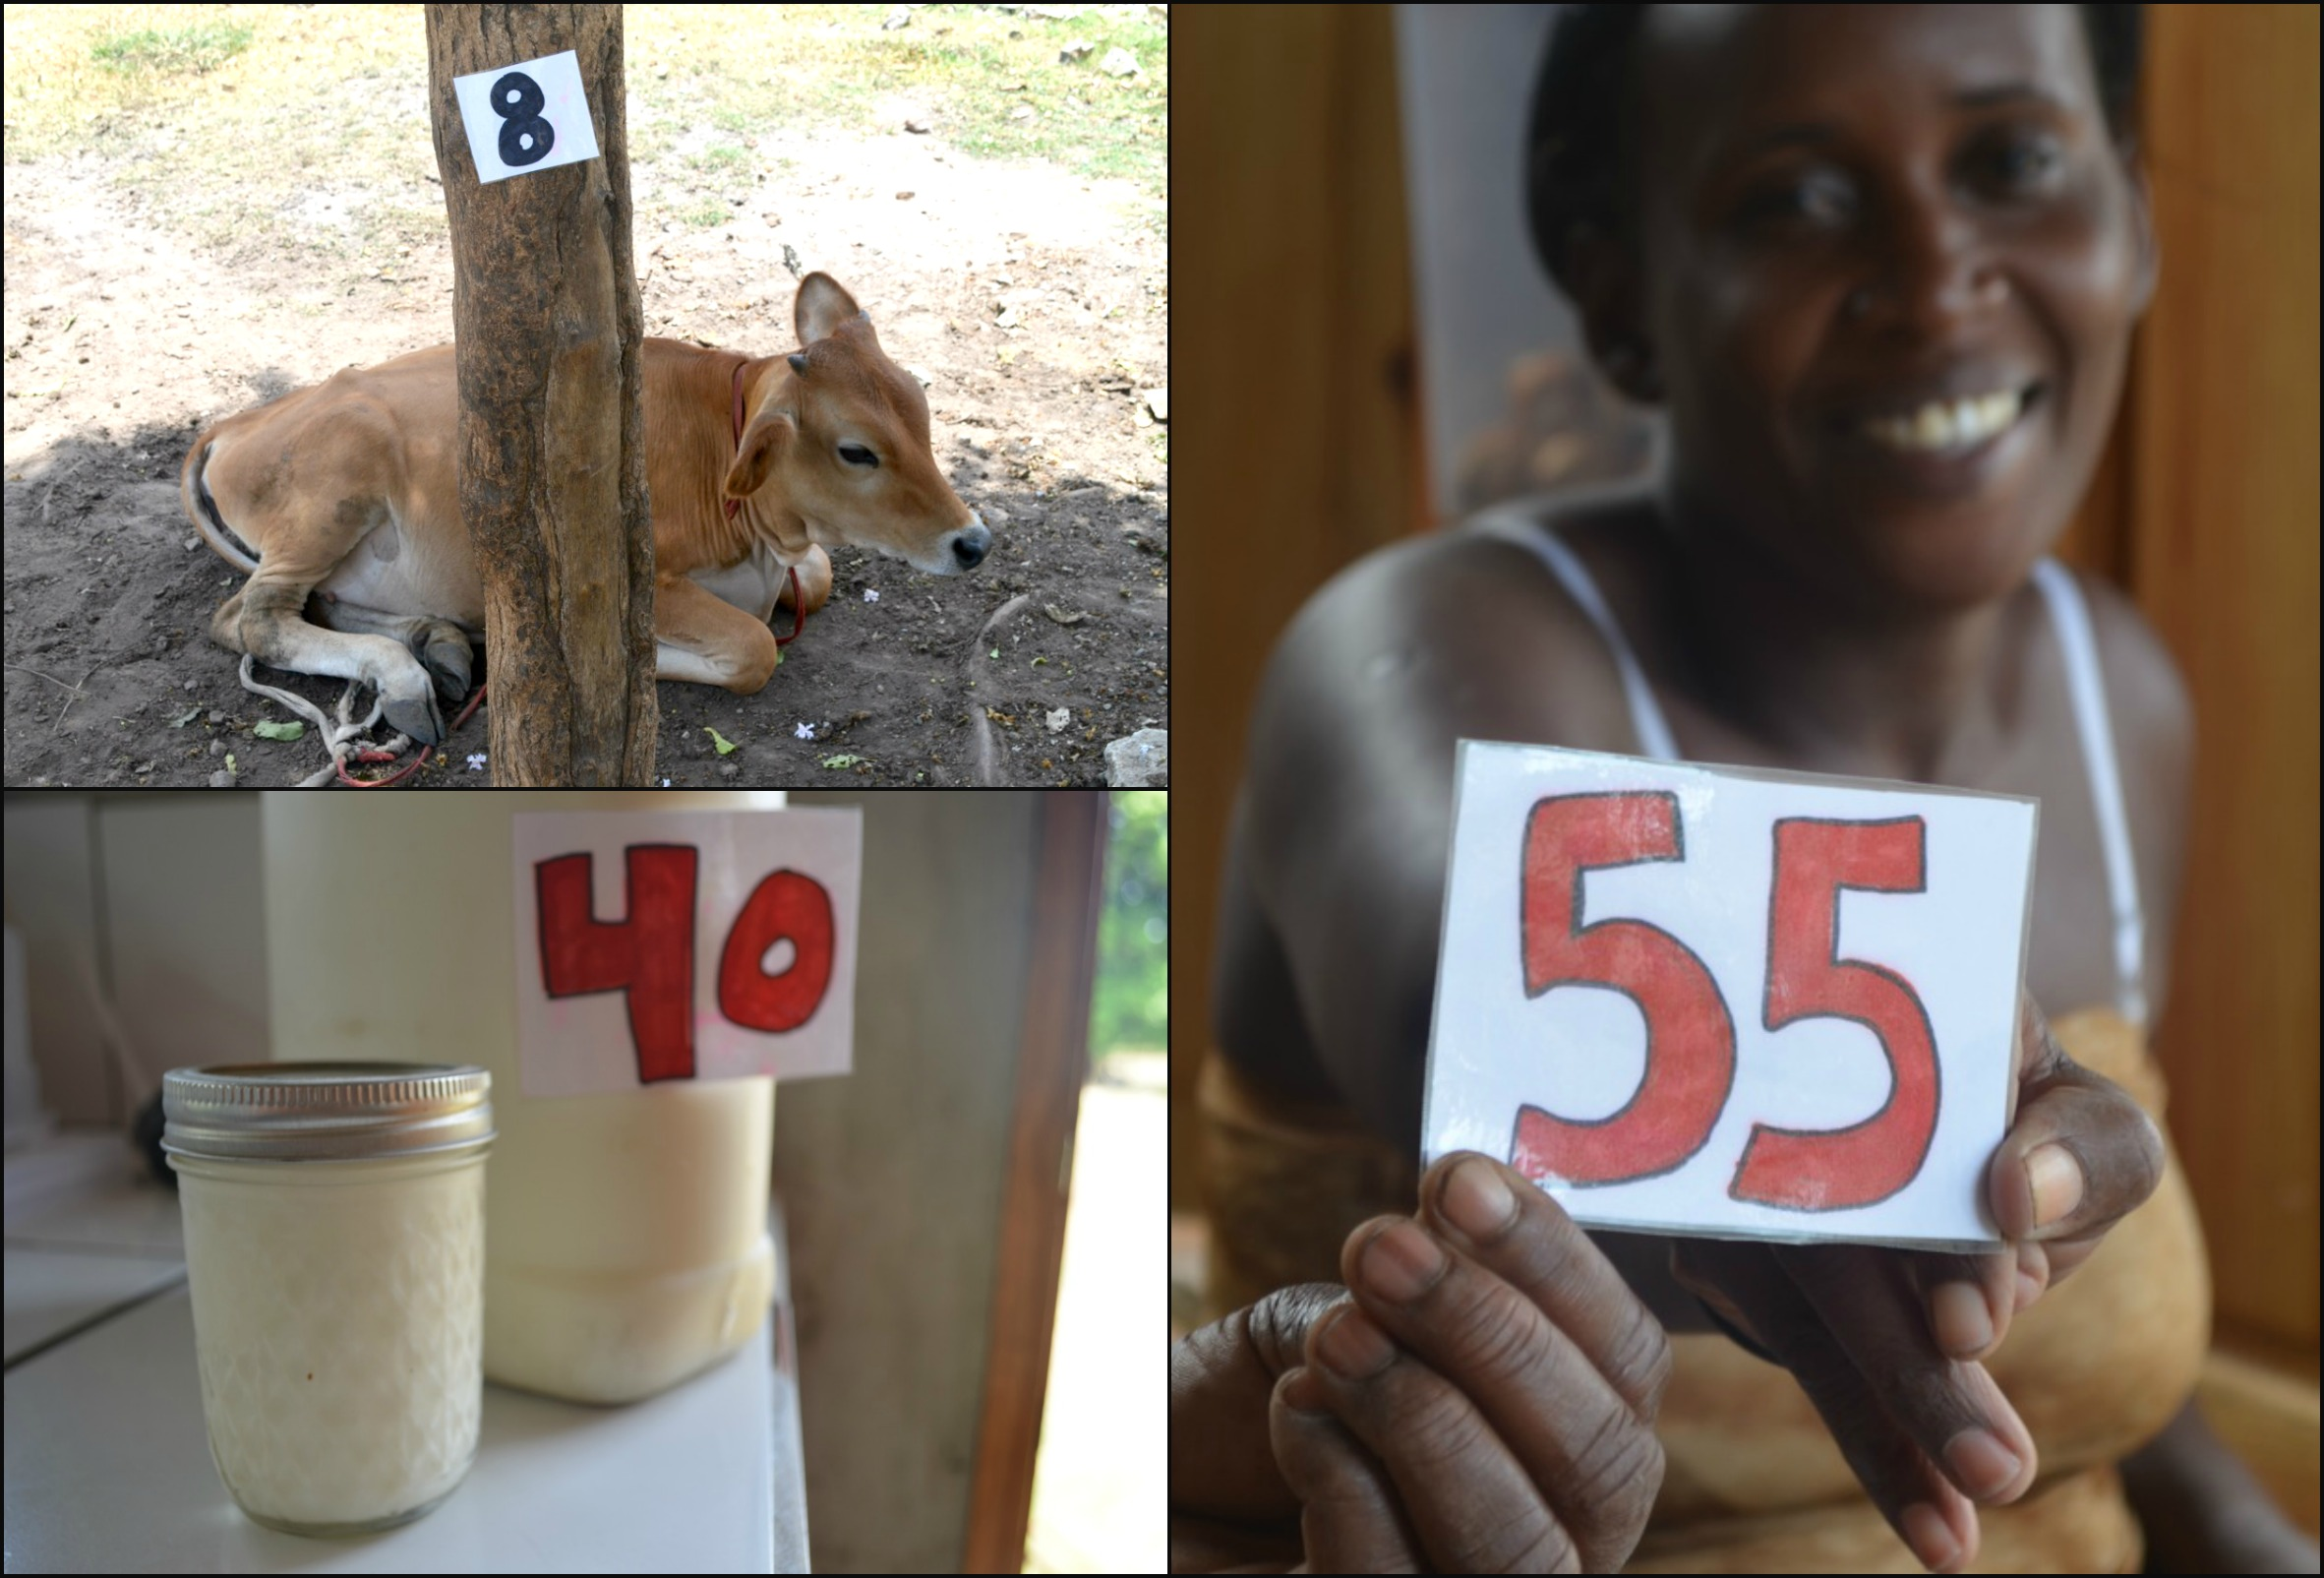 8 cows, 40 yogurts sold this week, 55 meals served per day.